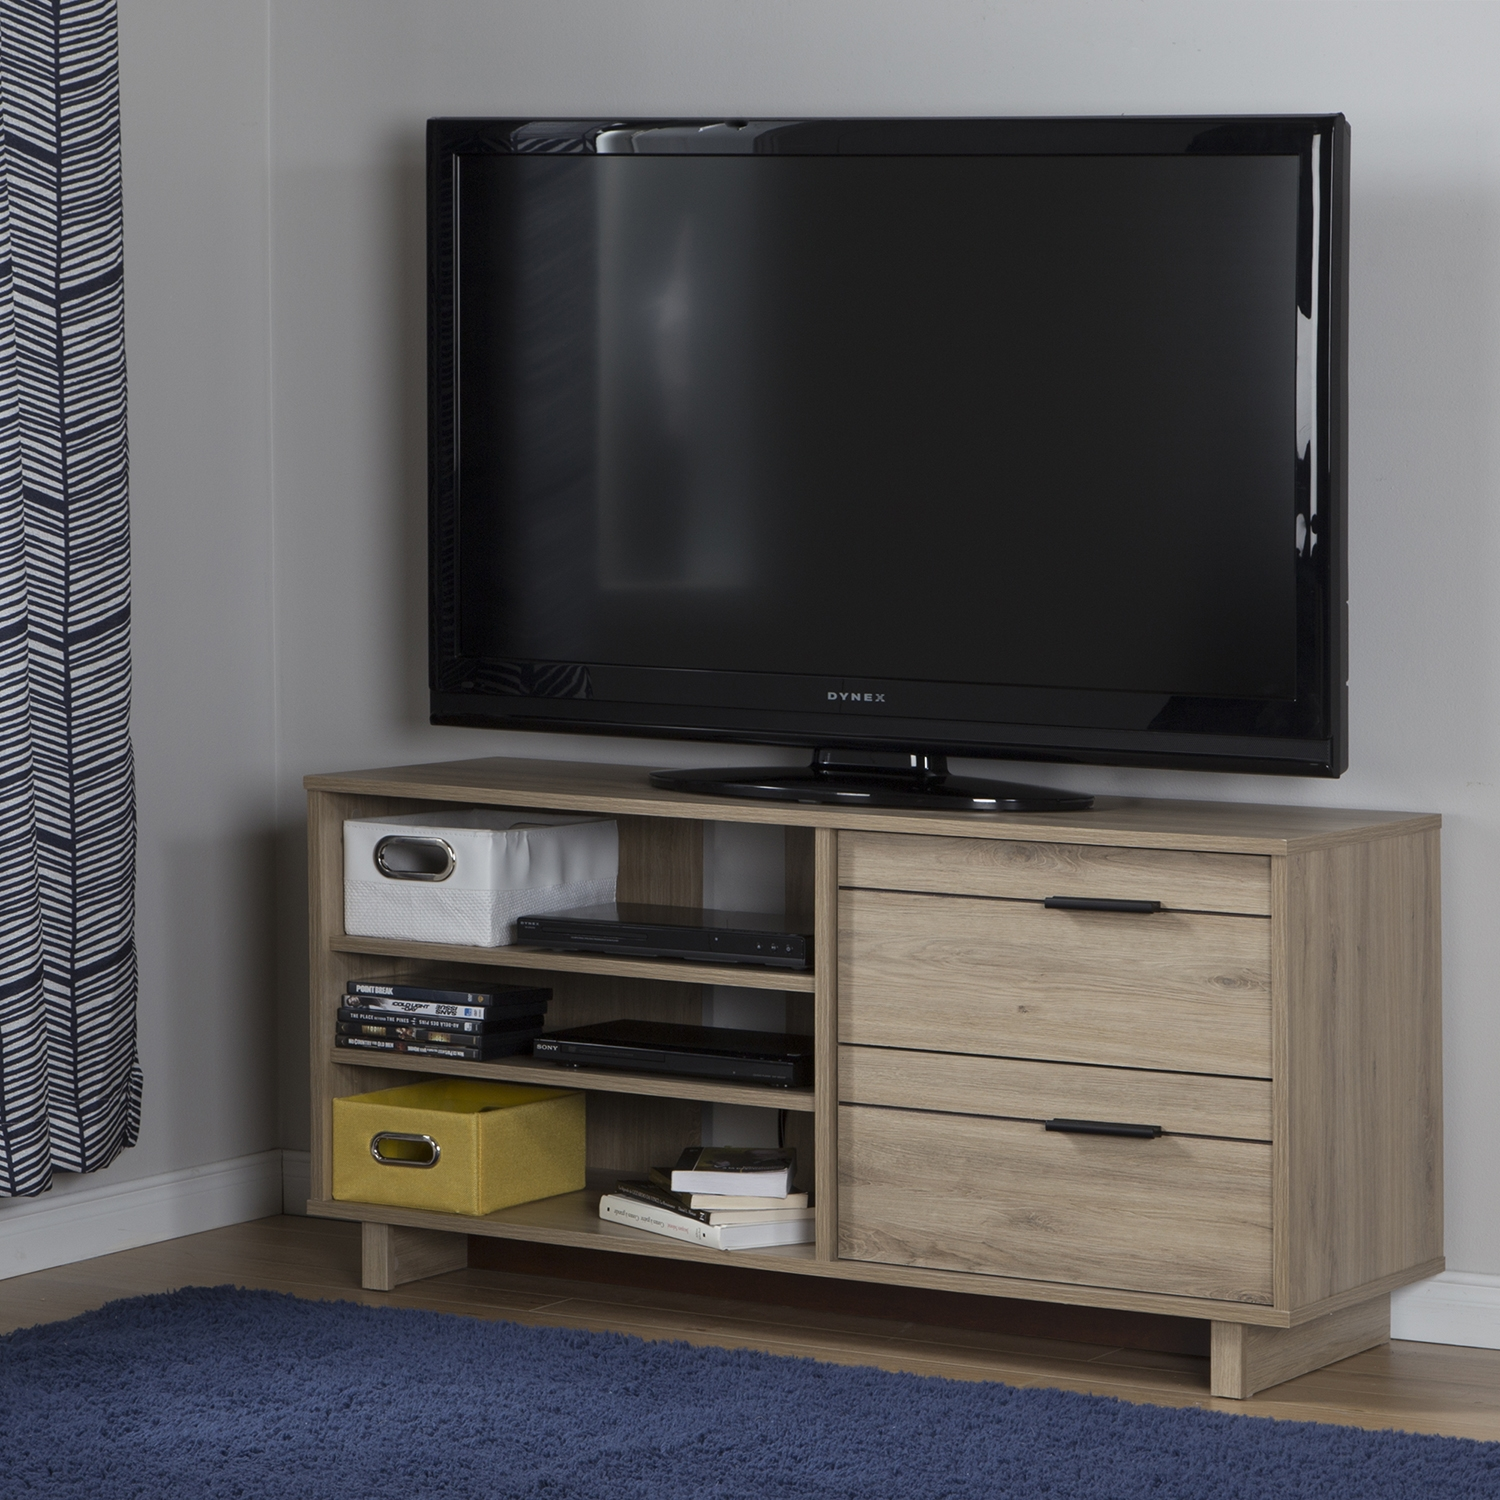 Fynn TV Stand - 2 Drawers, Rustic Oak - SS-10375